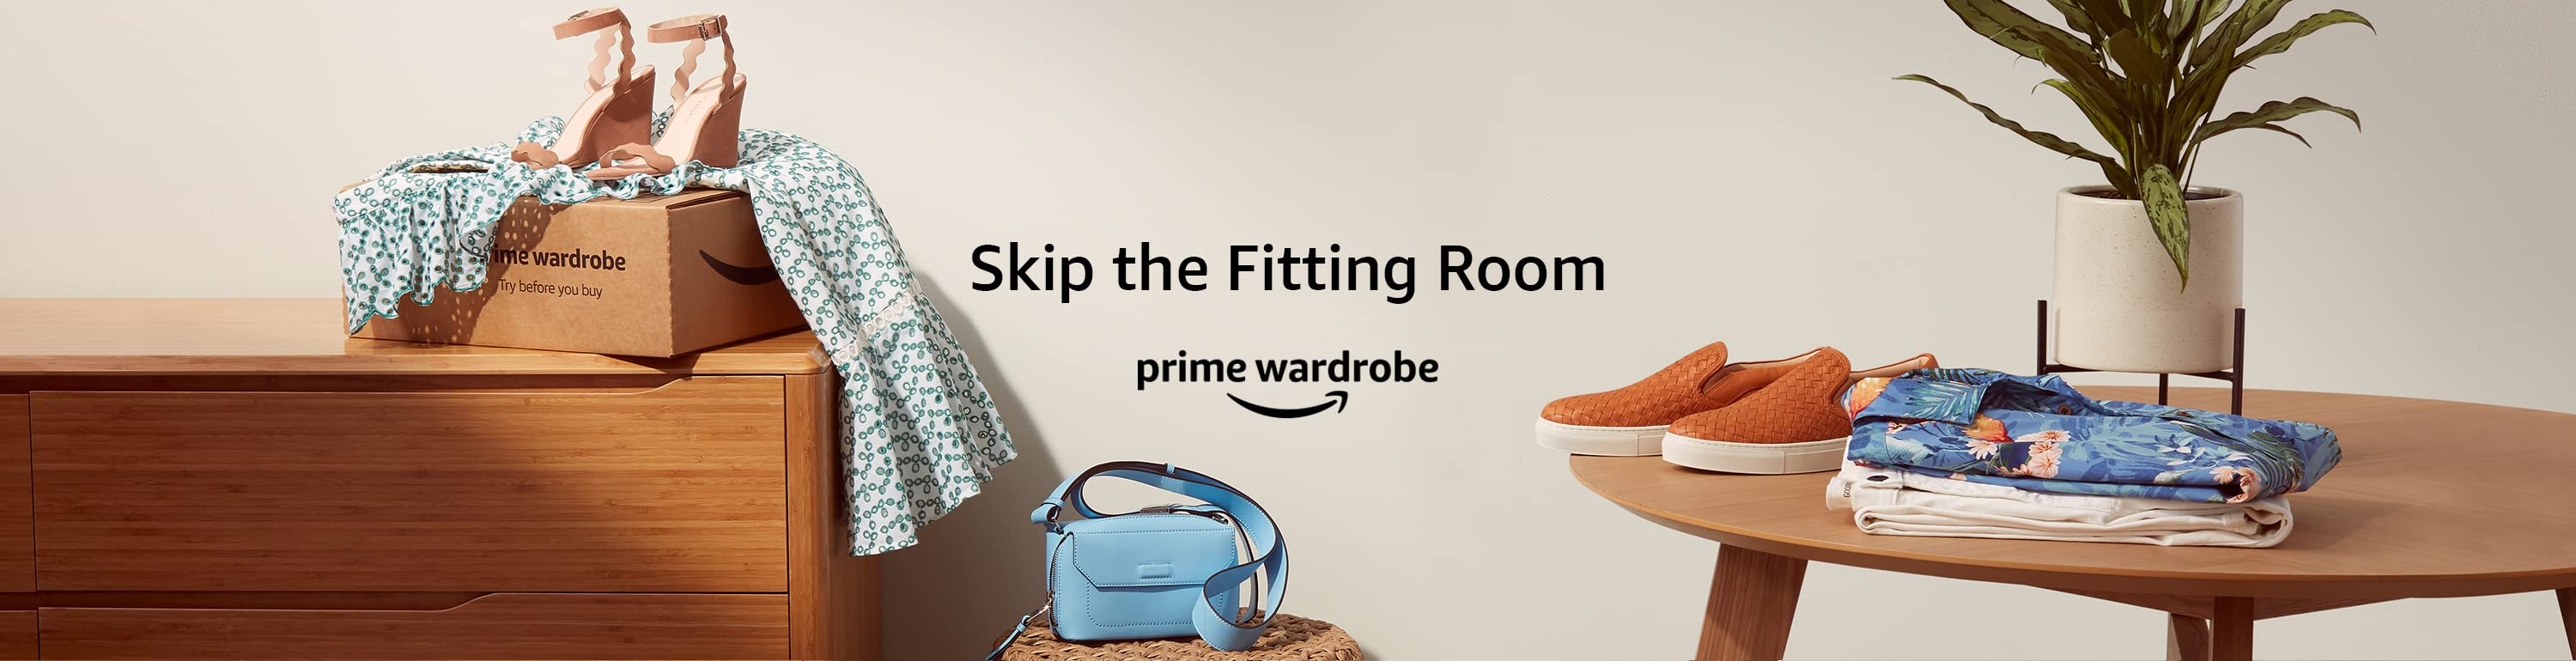 Skip the fitting room